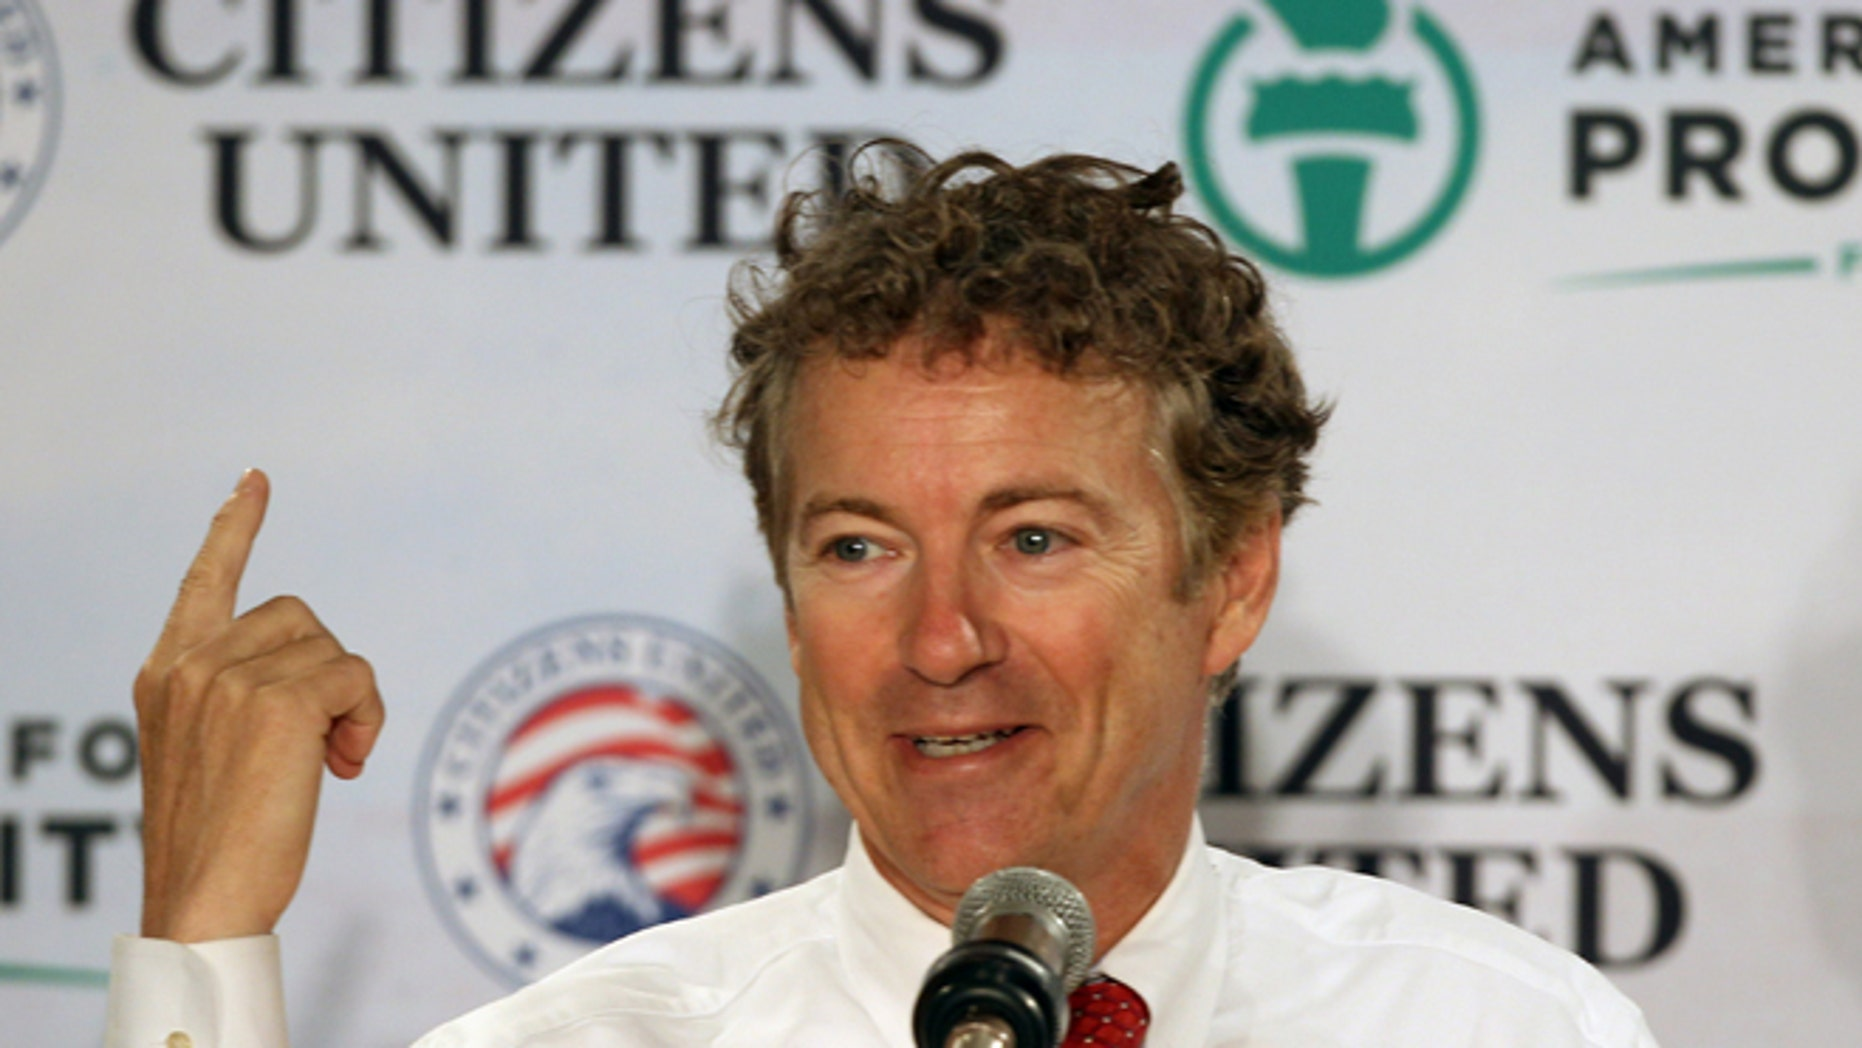 April 12, 2014: Sen. Rand Paul, R-Ky, speaks at a GOP Freedom Summit, in Manchester, N.H.